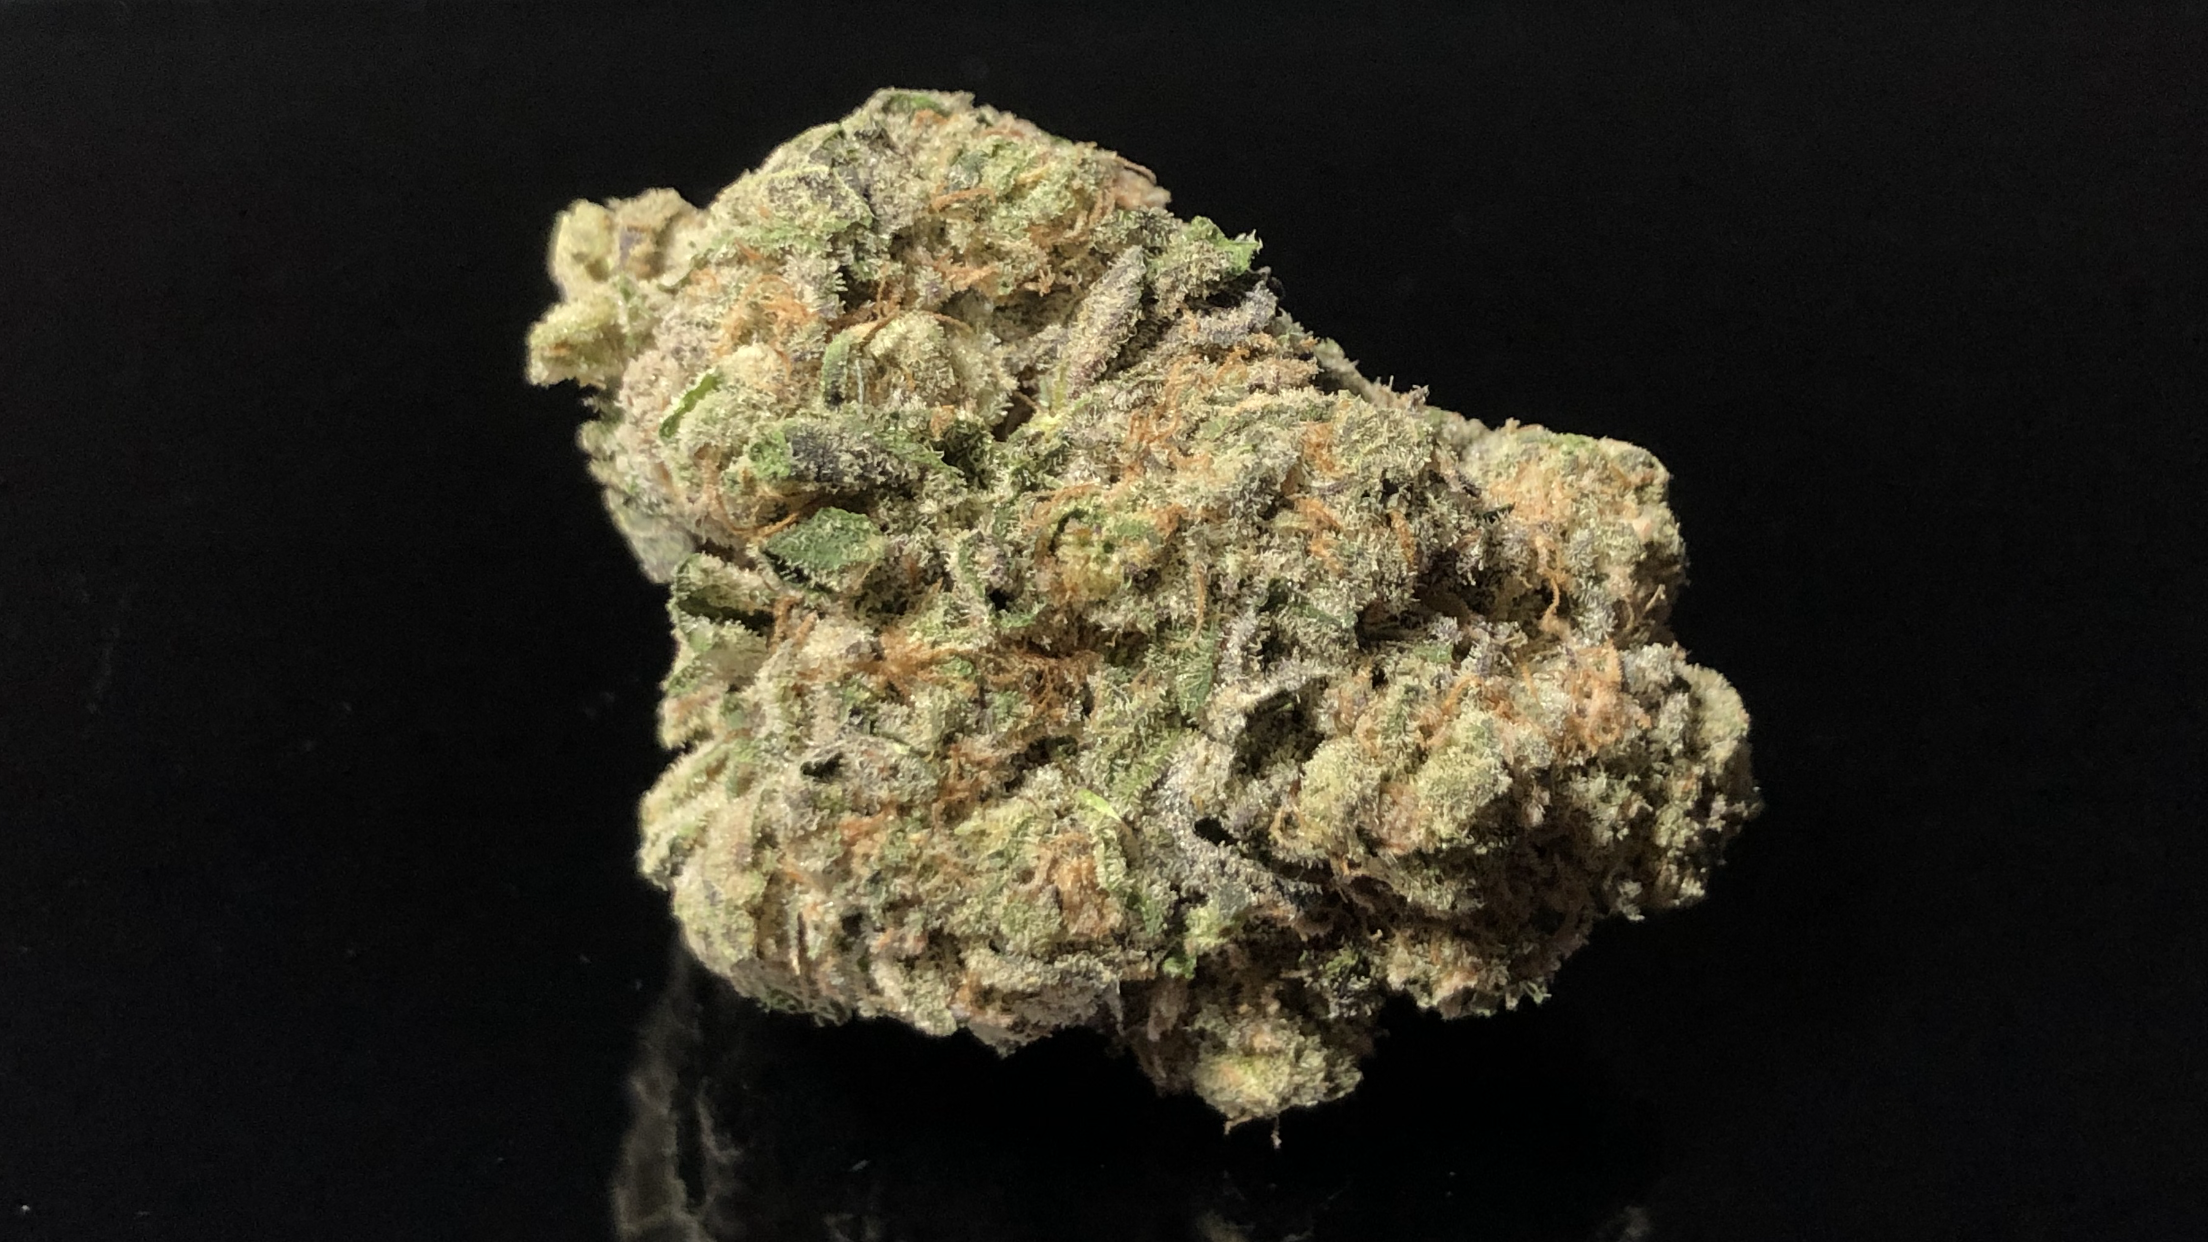 ICE CREAM CAKE 20-25% - Thursday Sale $20 off 1 oz, $10 off 1/2 oz